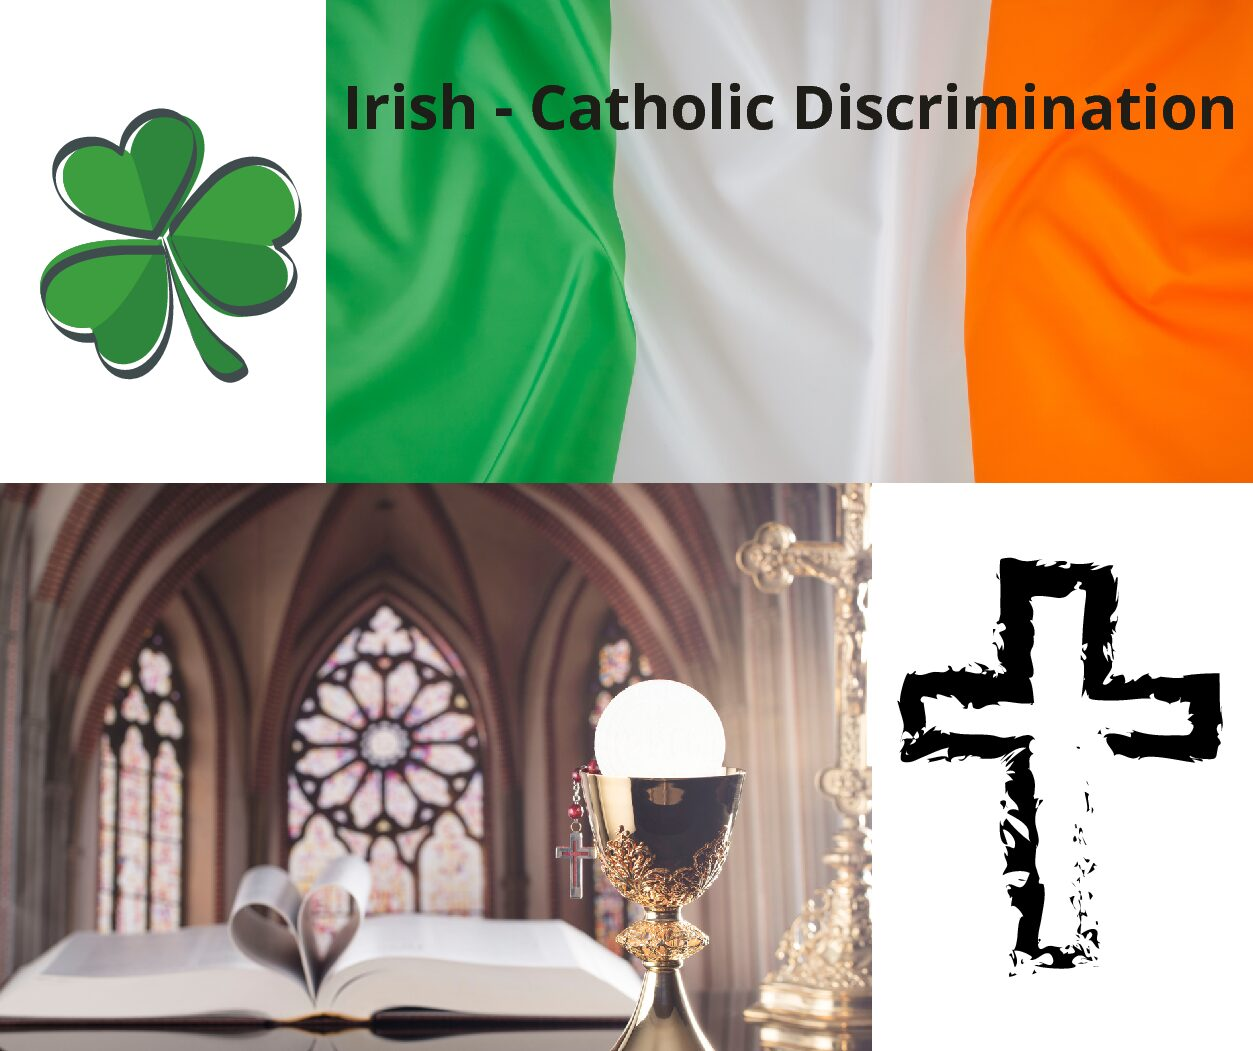 A discrimination story about  Irish-Catholics